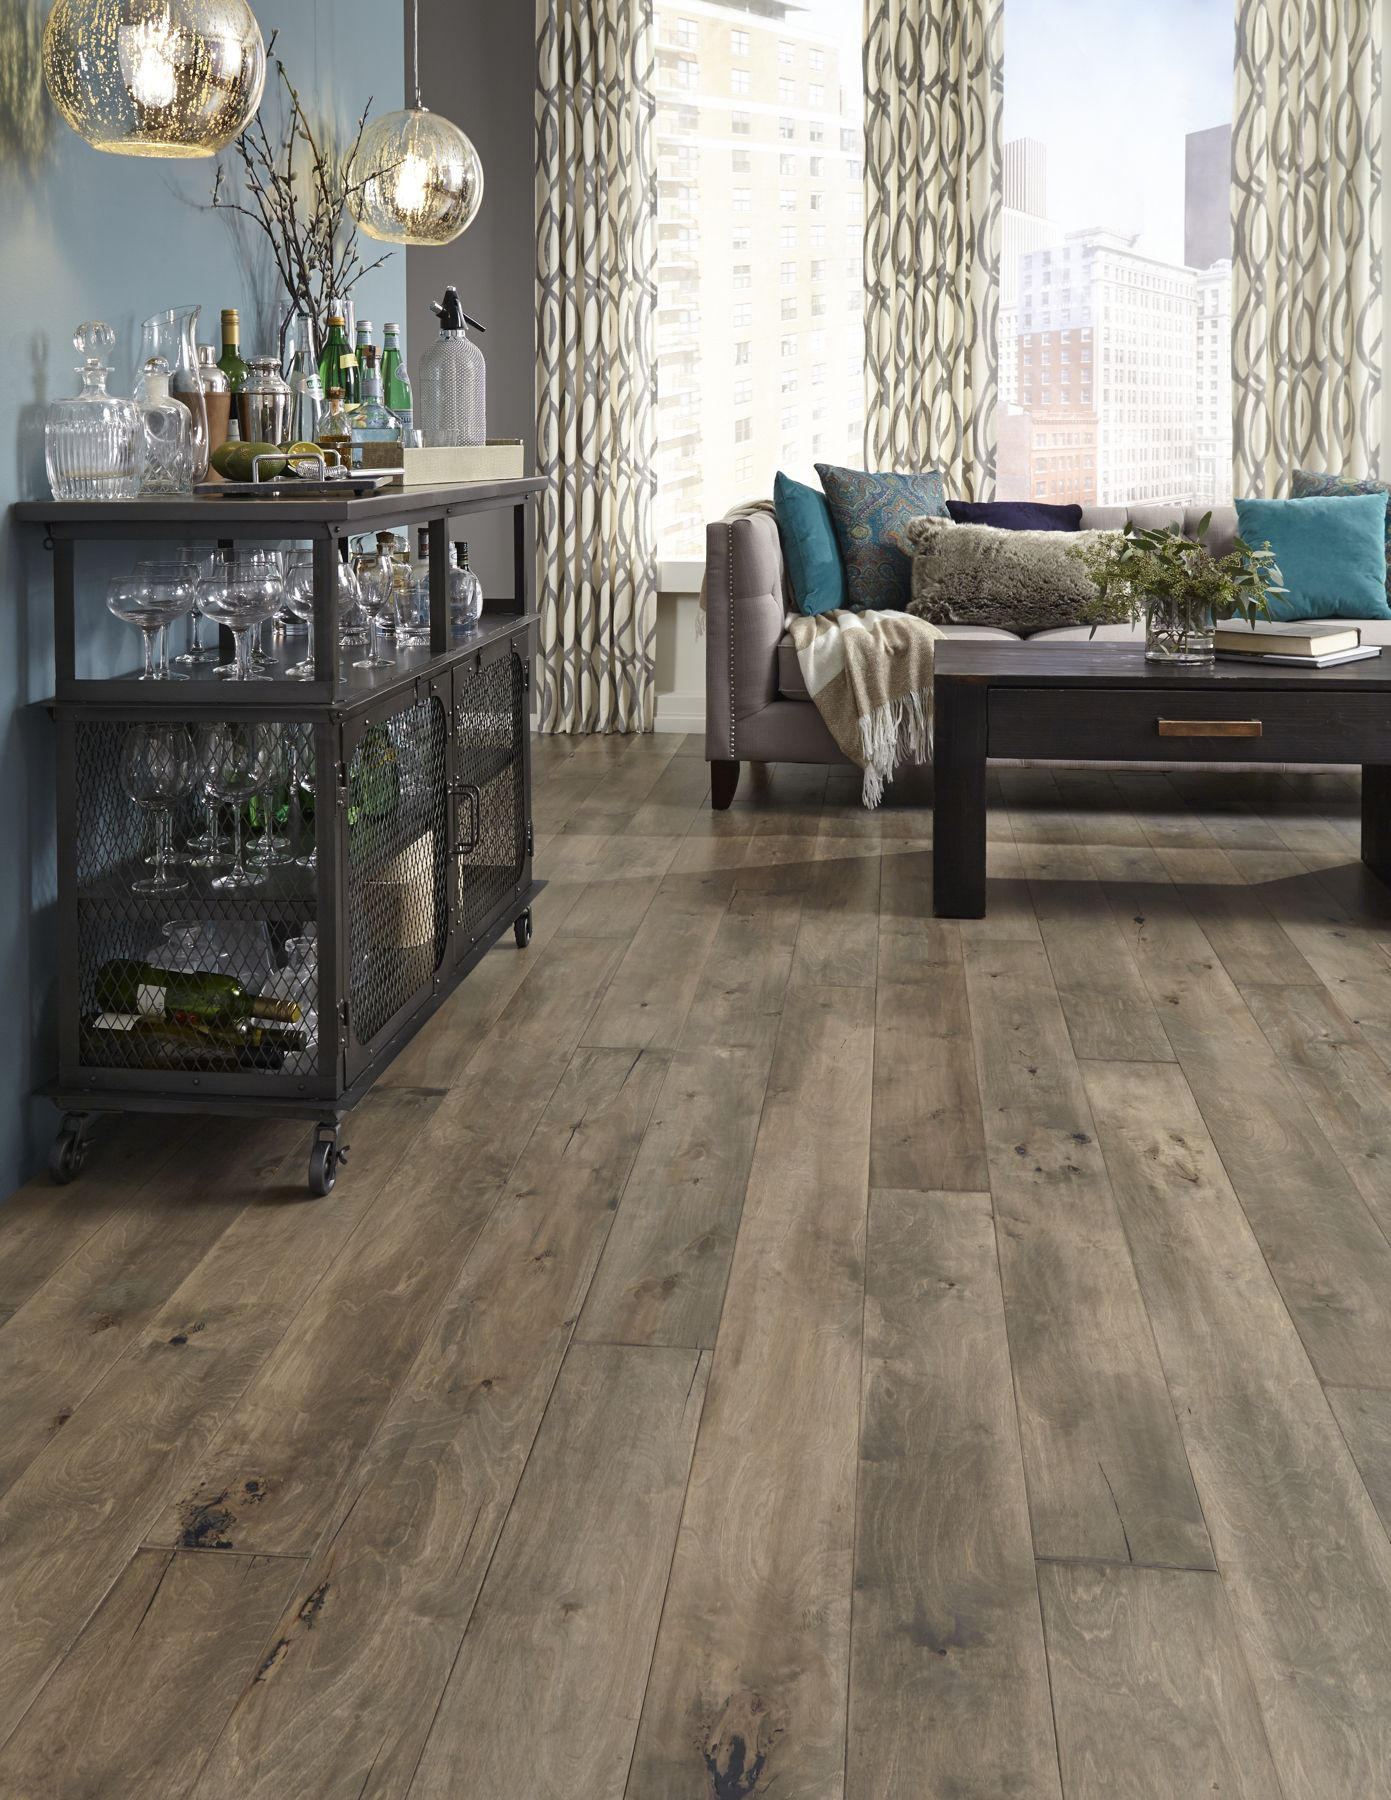 Iberian Hazelwood Is A Rustic Refined Hardwood Floor With Subtle Hand Planed Texture And Engineered Wood Floors Wood Floors Wide Plank Hardwood Plank Flooring